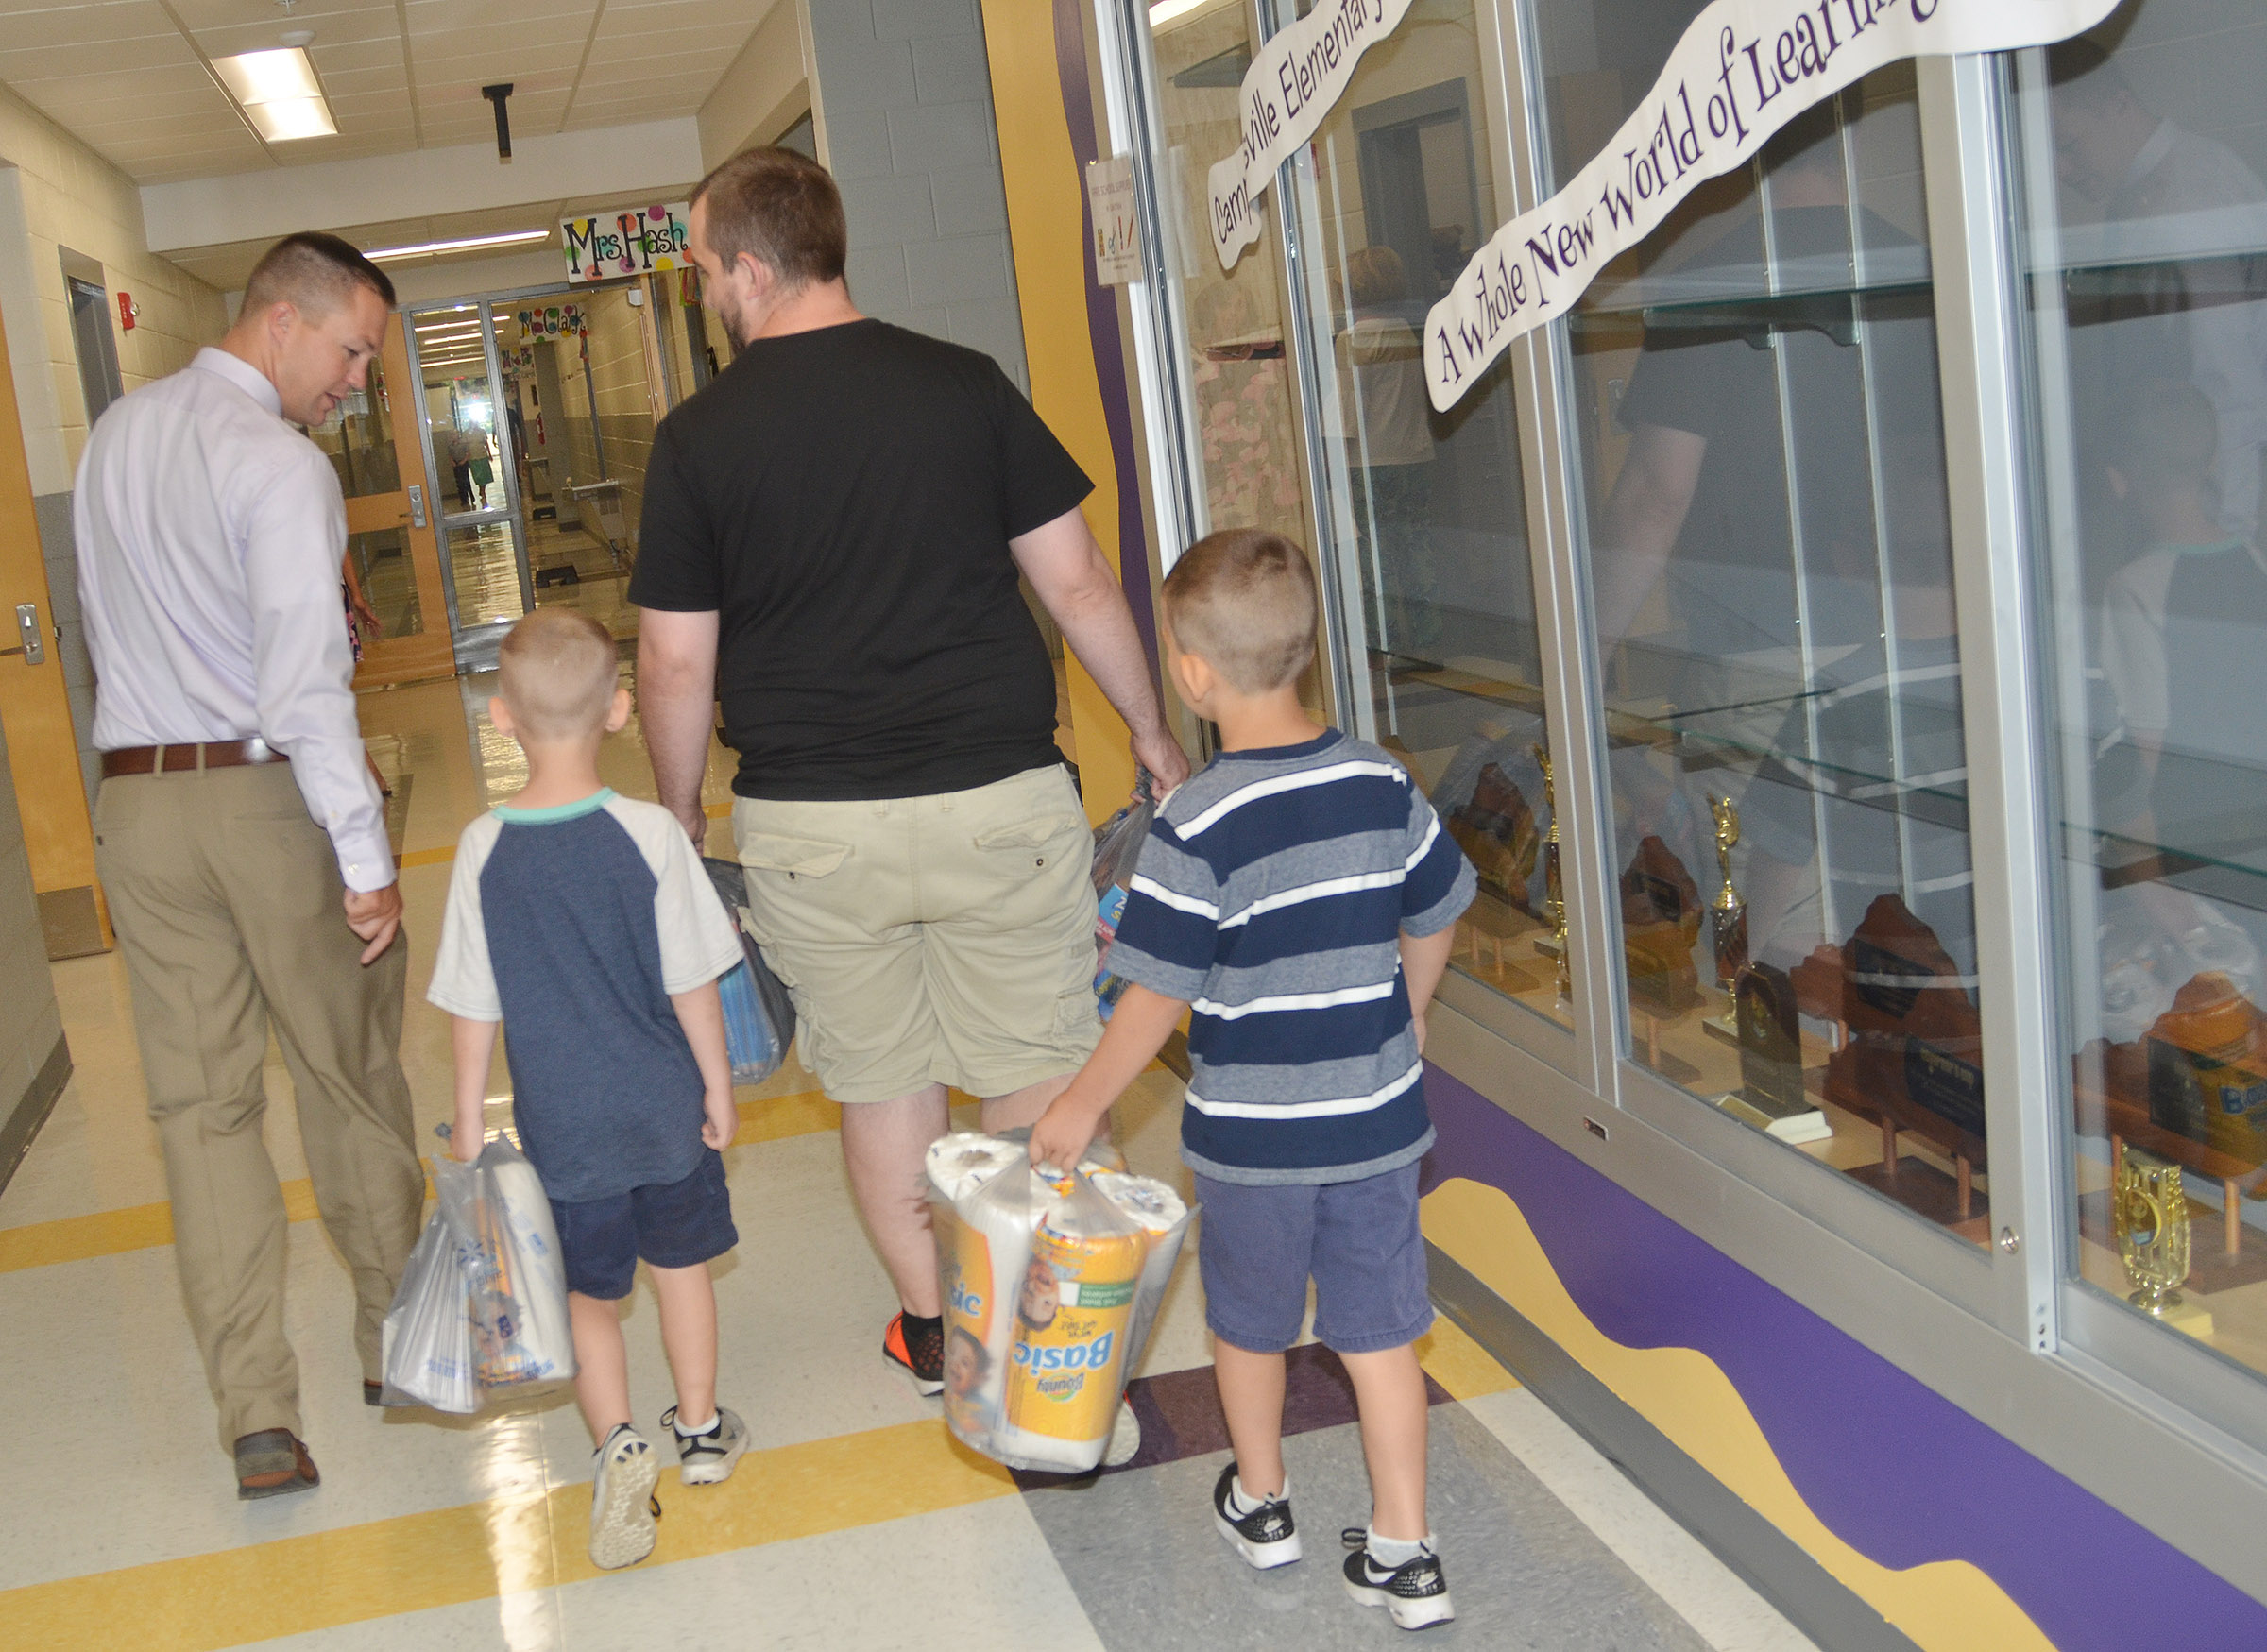 CES Assistant Principal Weston Jones, at left, leads CES students and their father to their classroom.